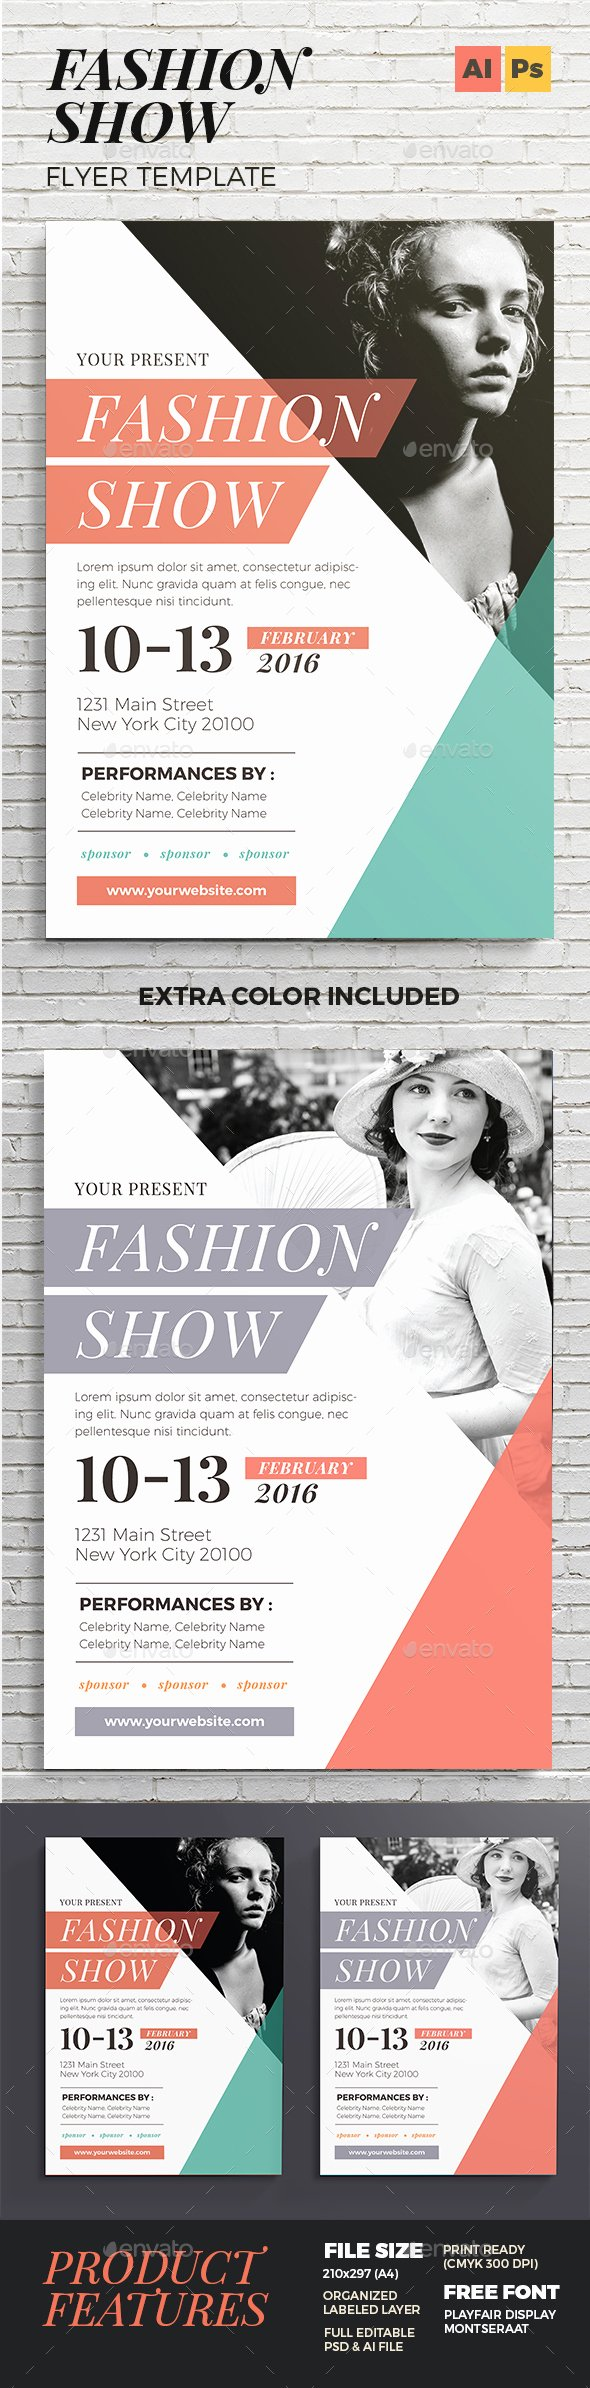 Fashion Show Flyer Template Awesome Fashion Show Flyer by Vynetta